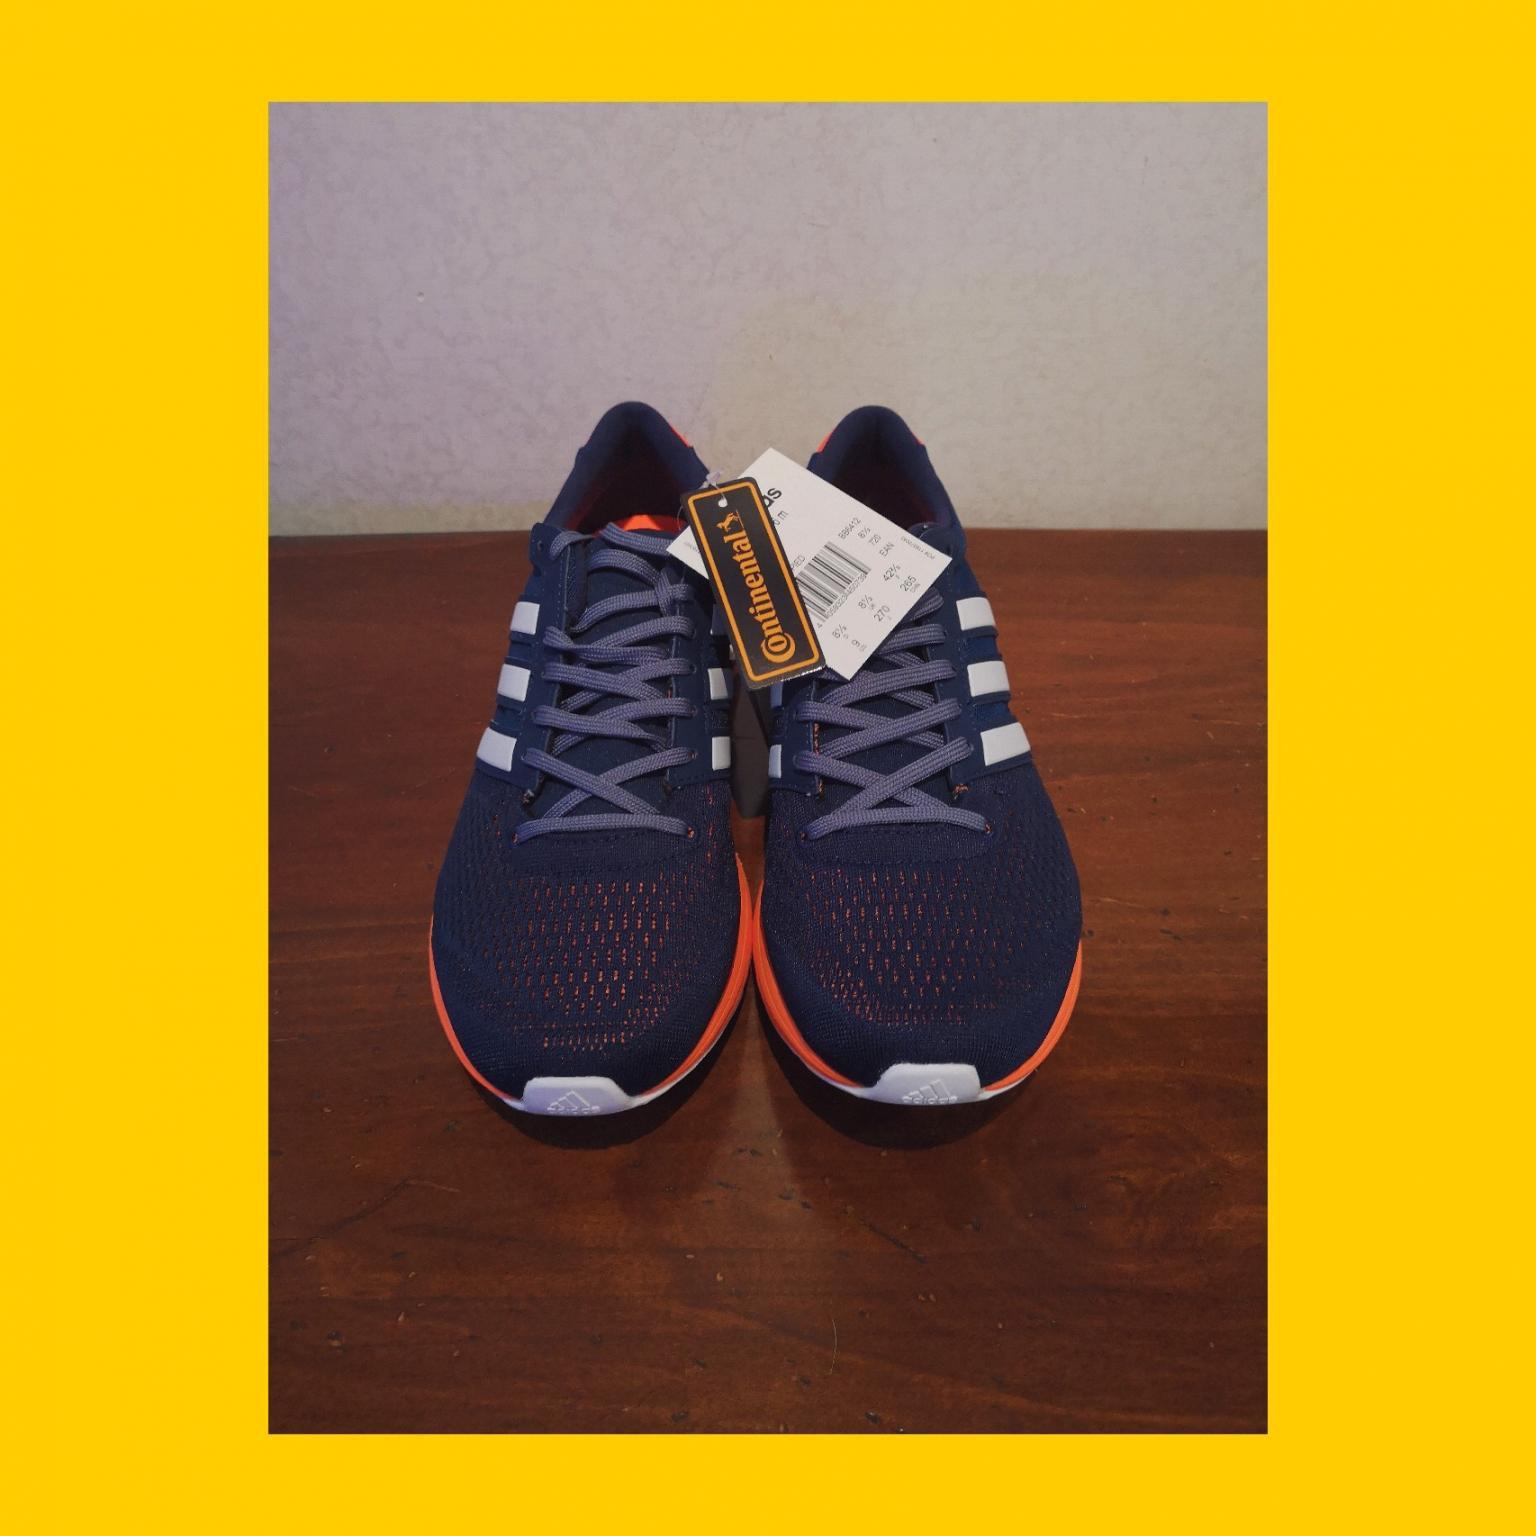 adidas adizero boston stivali 6 uk